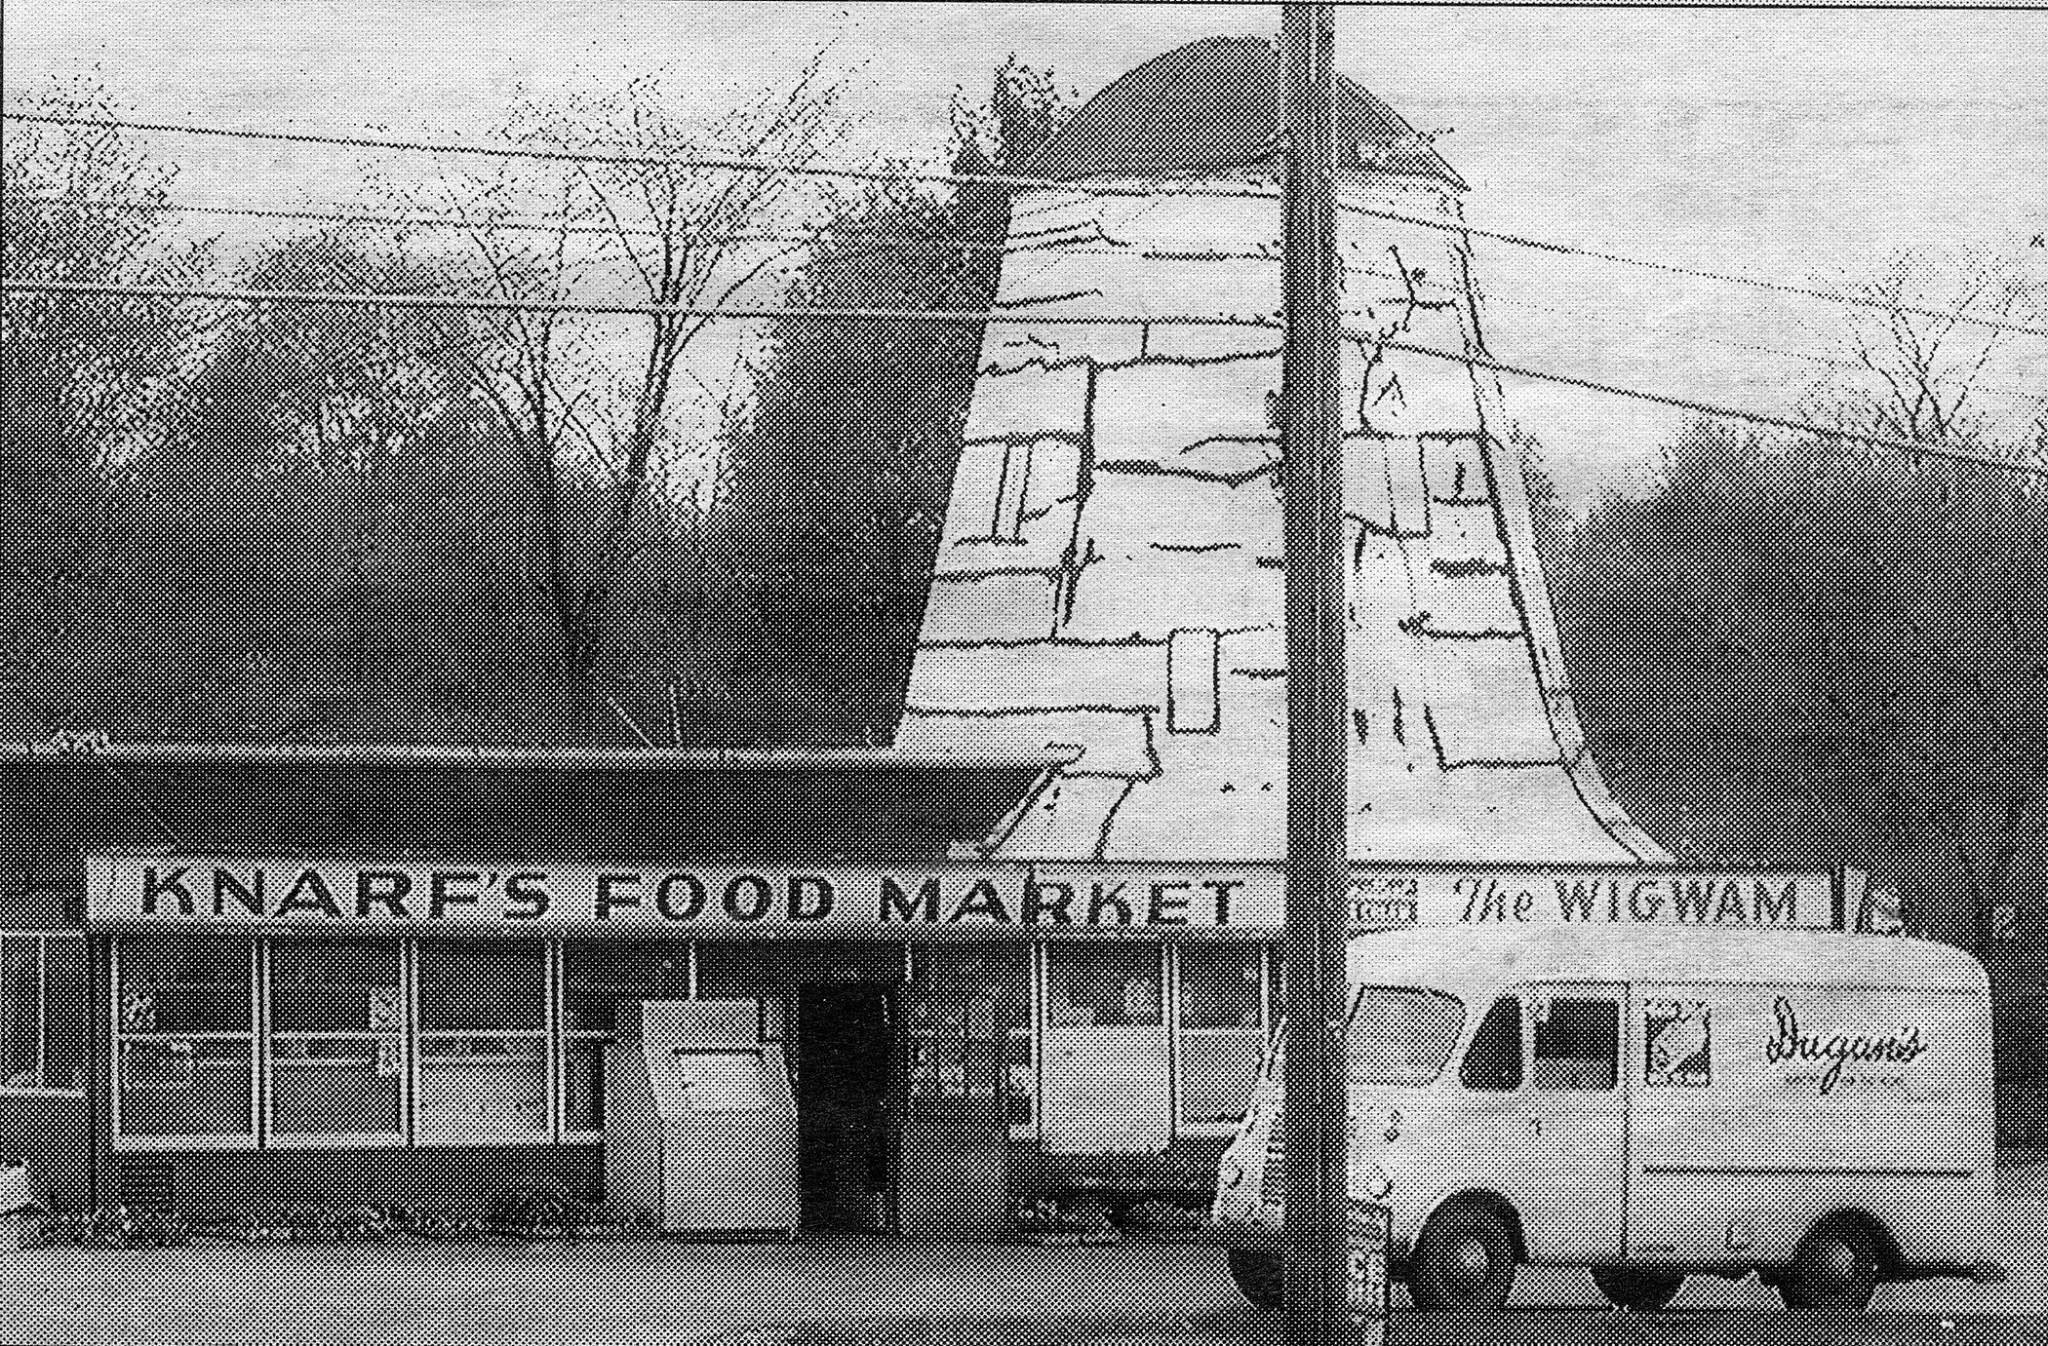 Knarfs market and the wigwam at the green in manchester